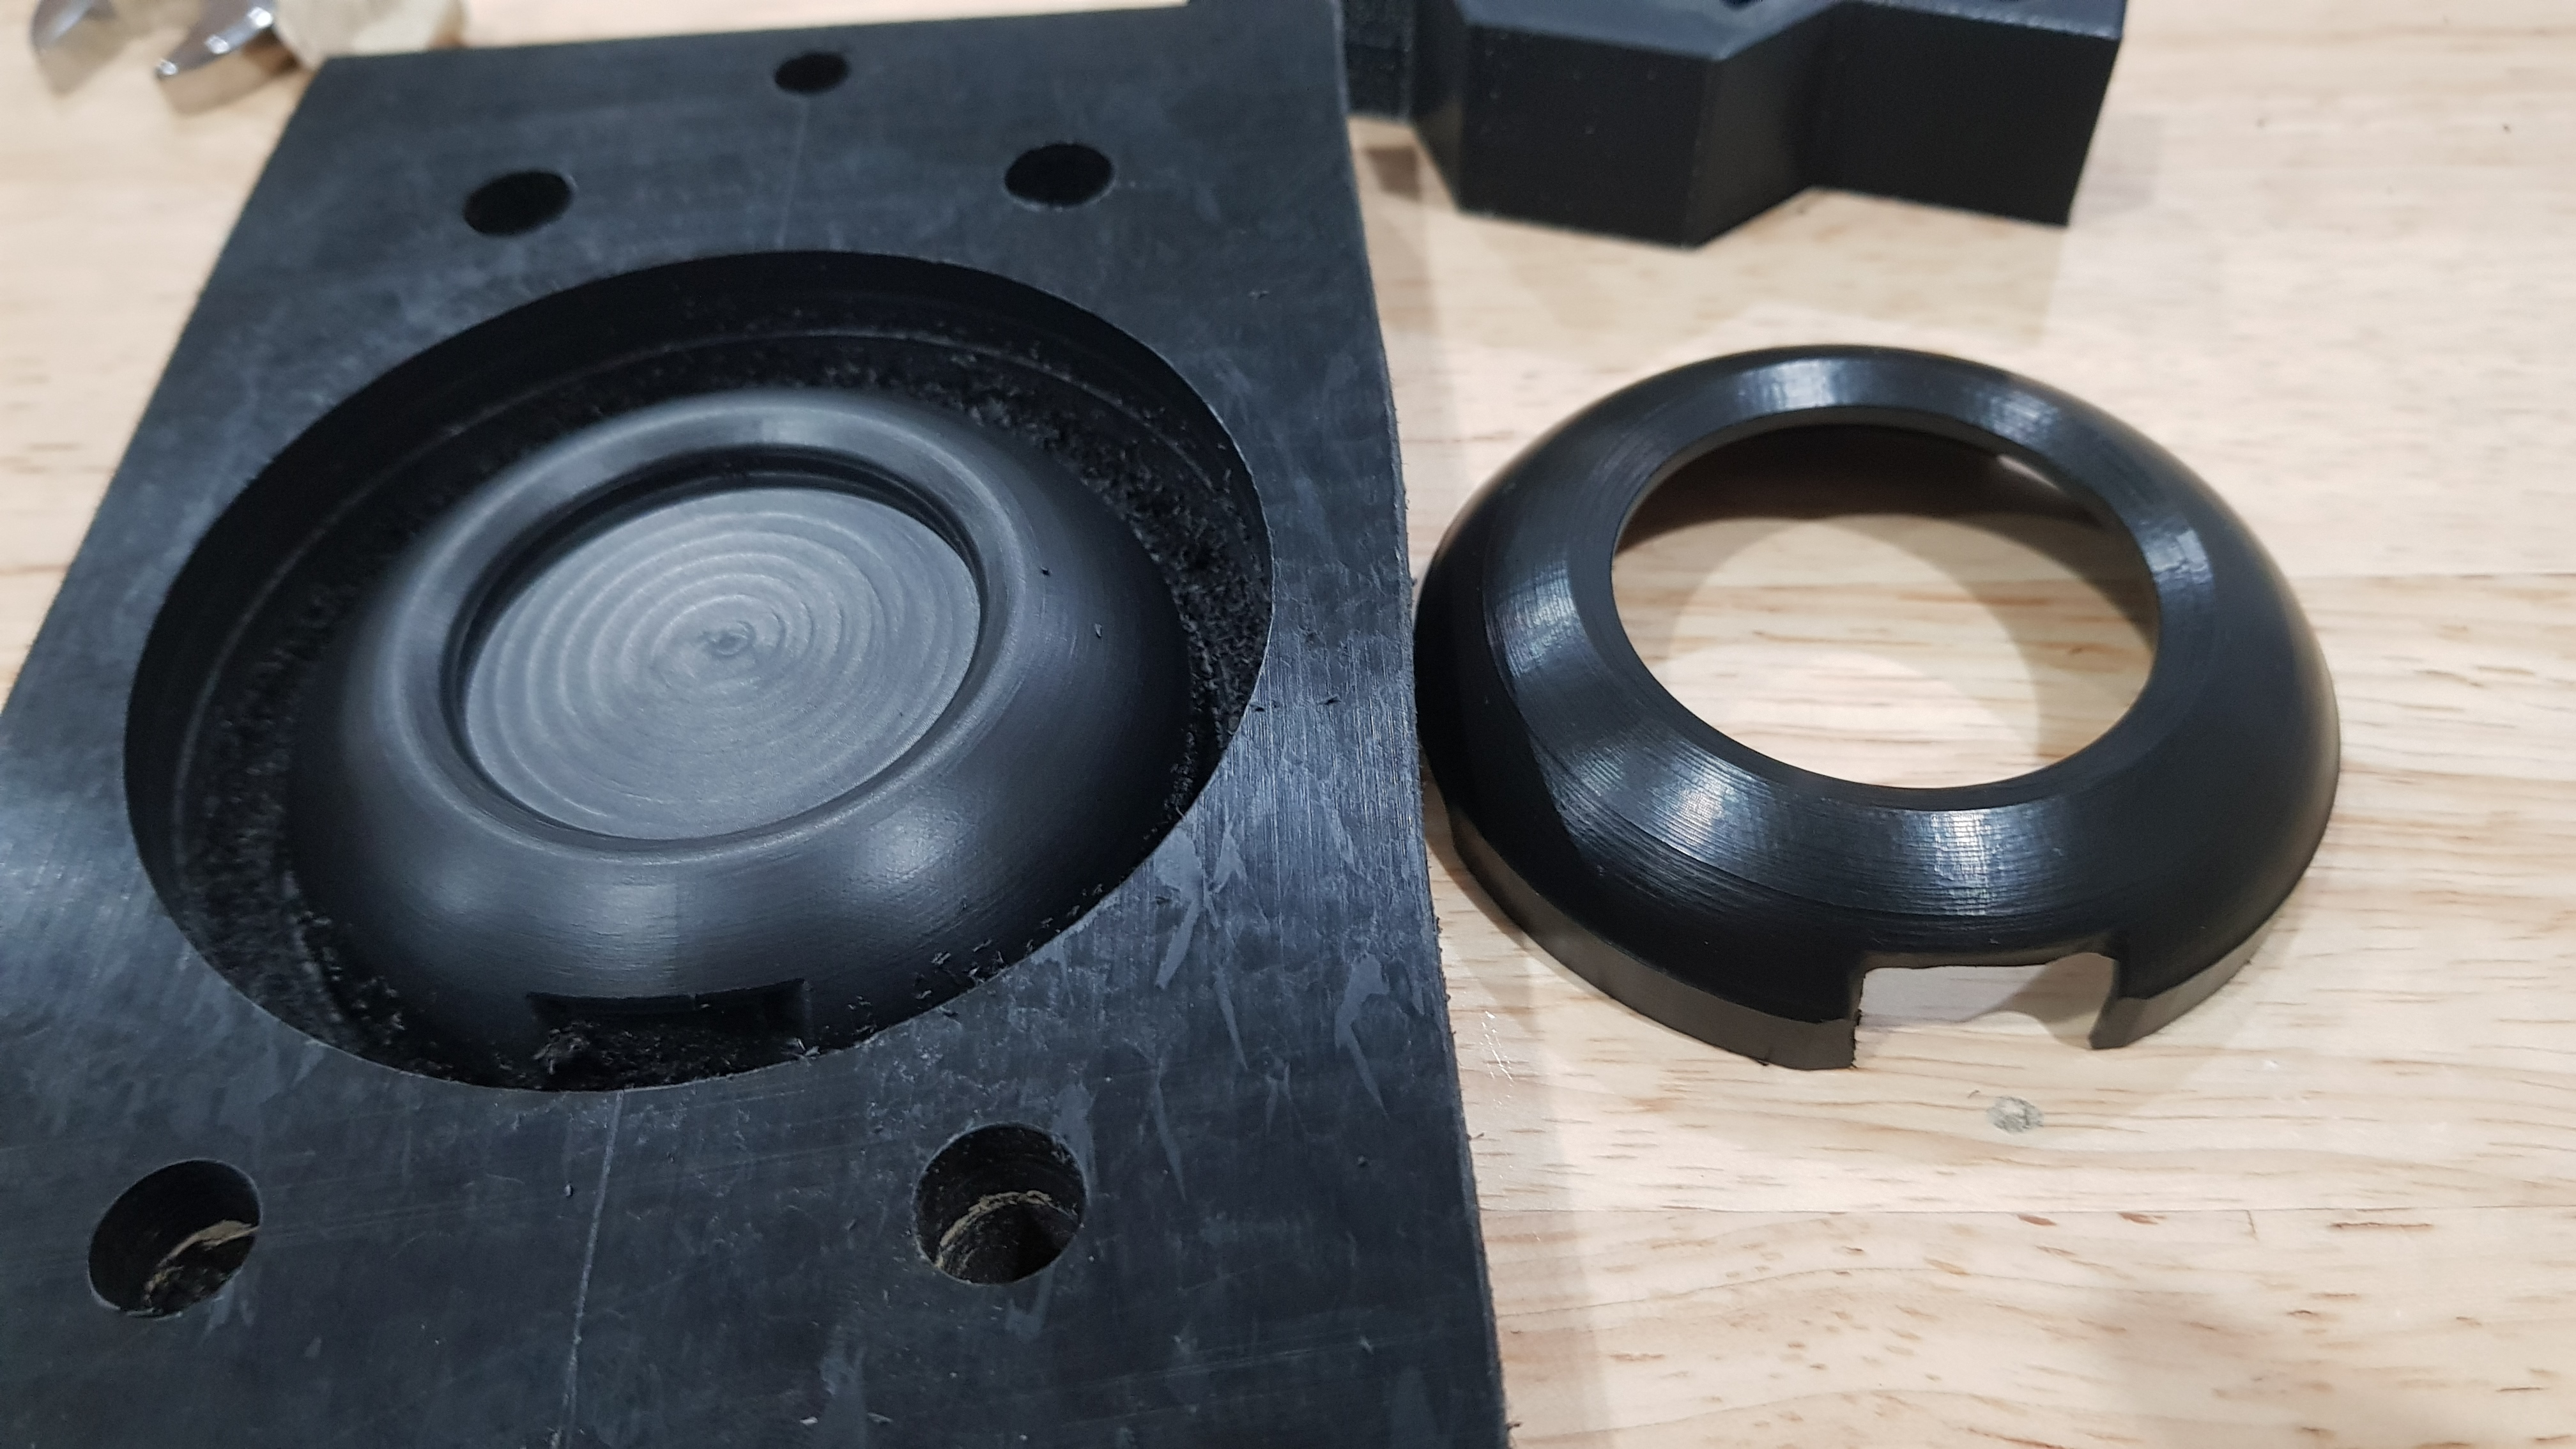 There are two Top parts on the bench. One on the left has a smooth surface with the improvement in toolpathing, one on the right has a rough surface